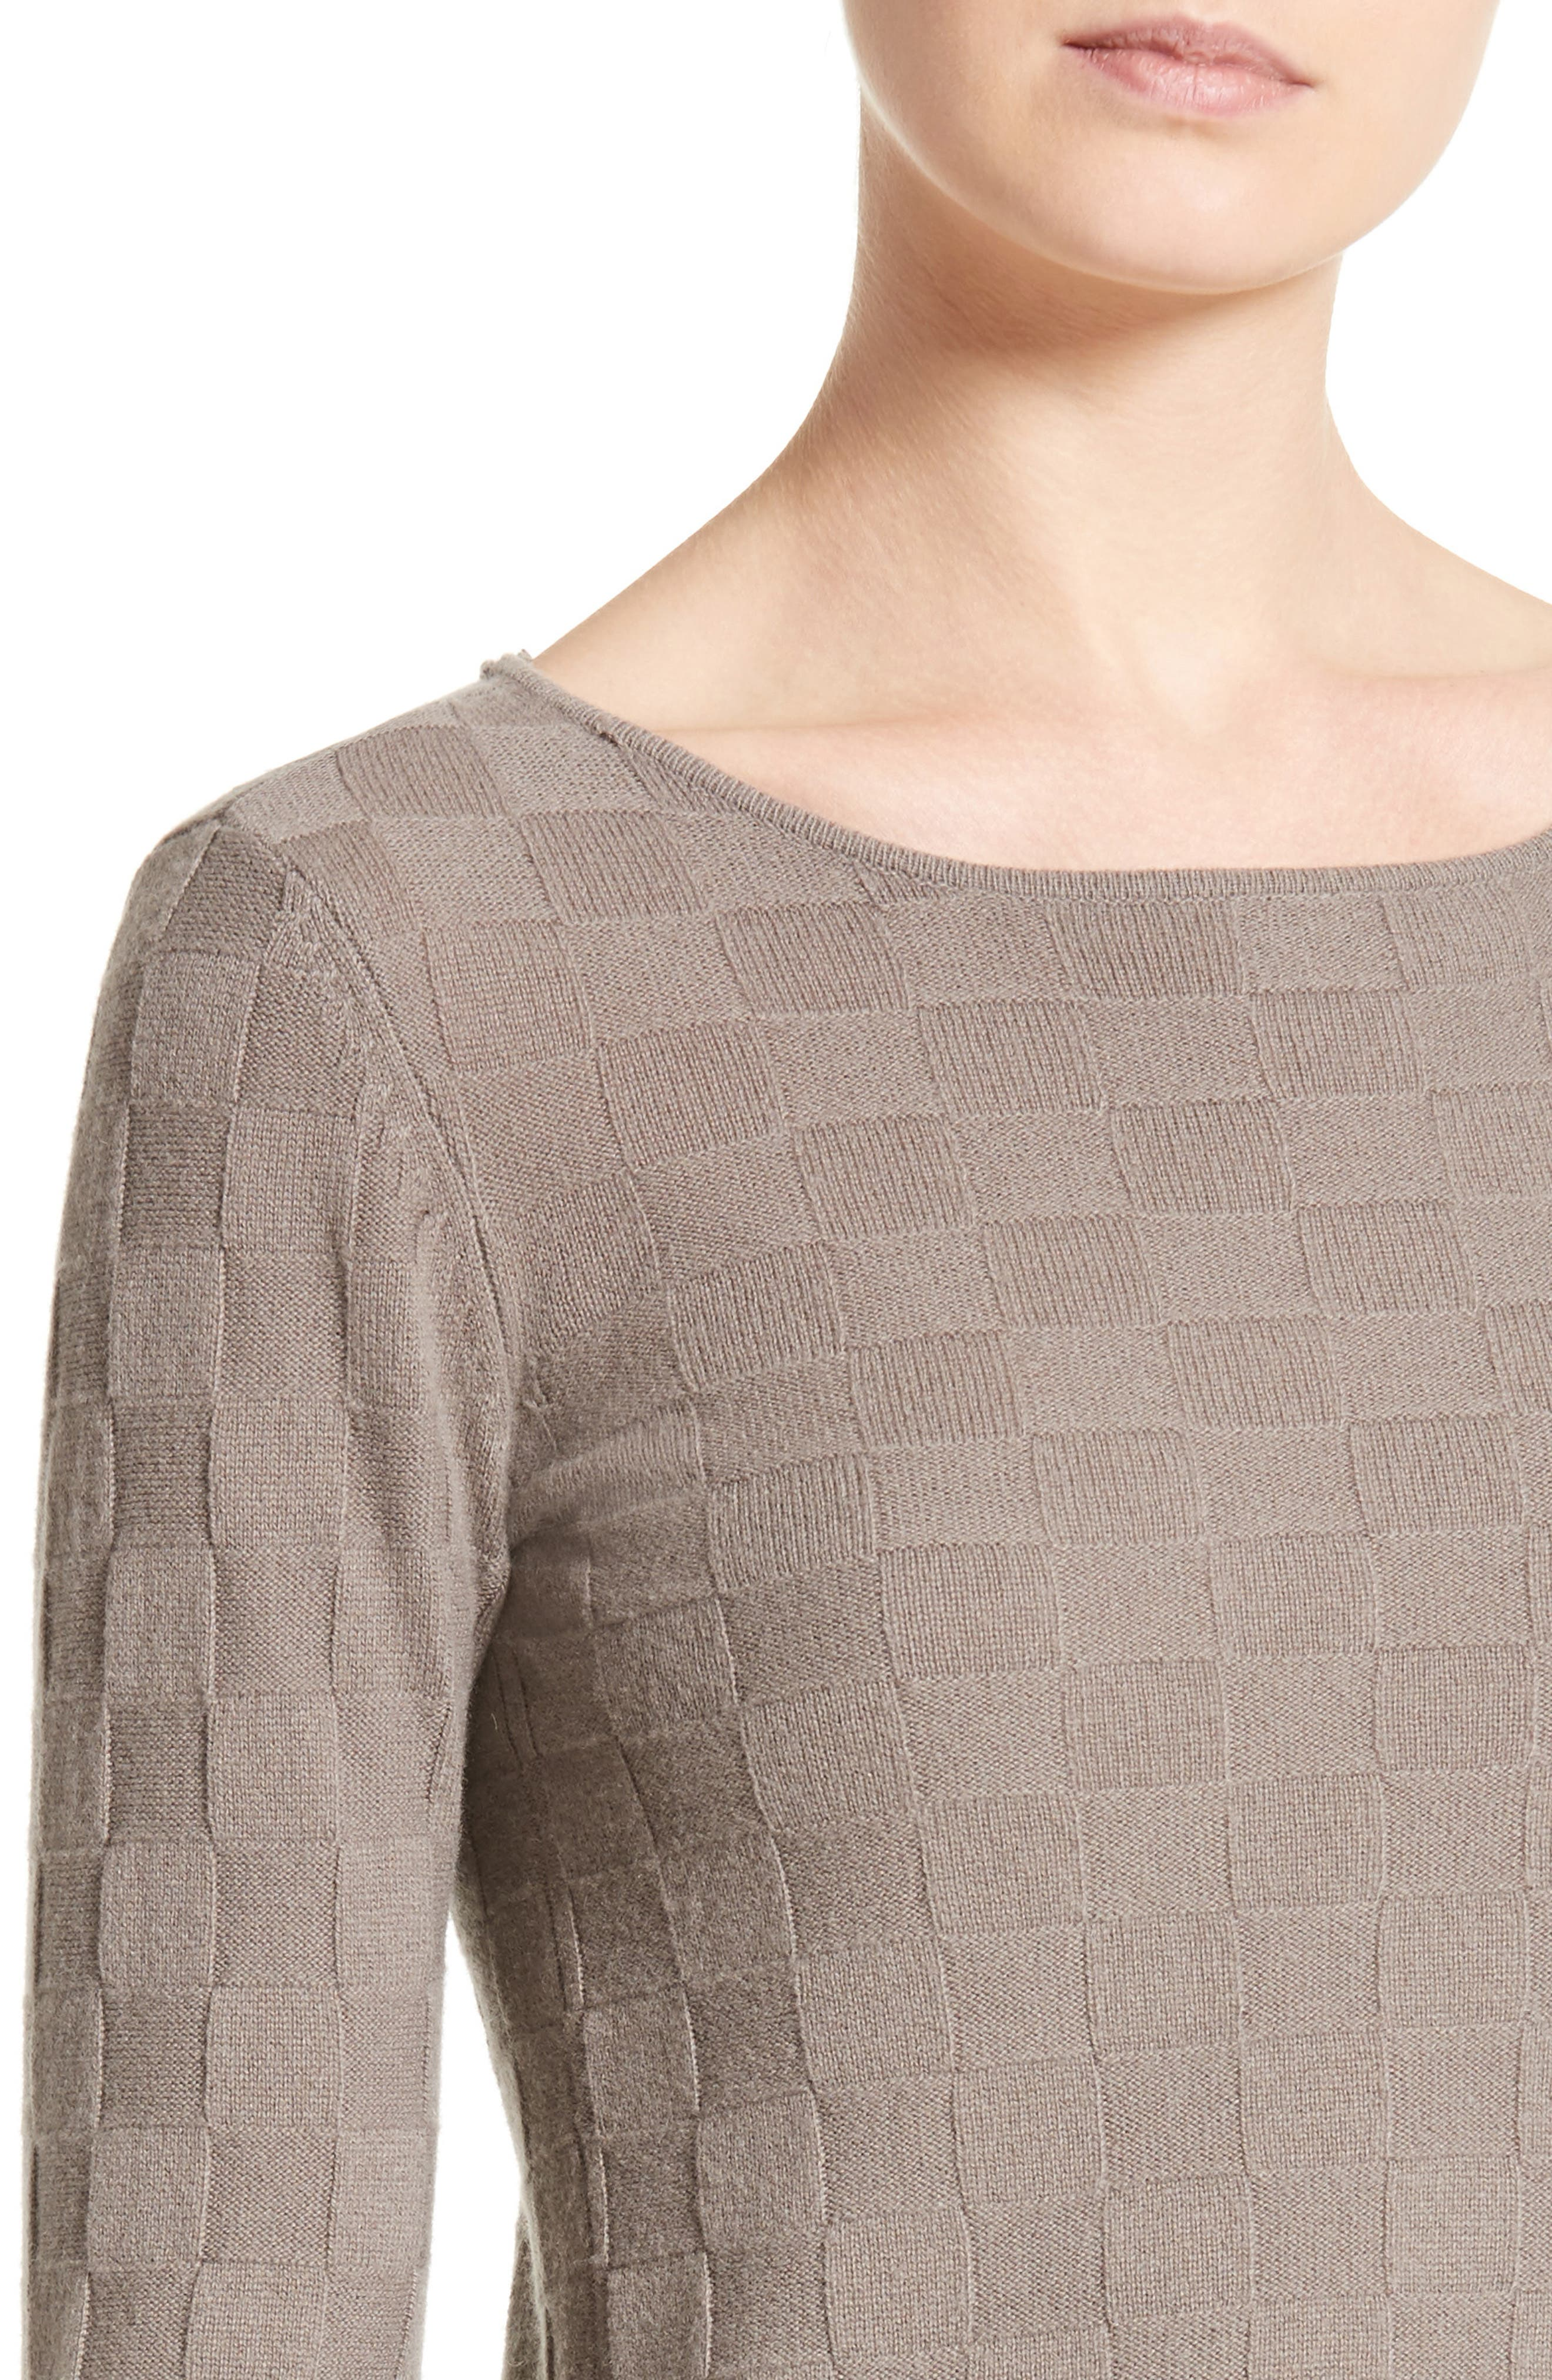 Checkerboard Cashmere Sweater,                             Alternate thumbnail 4, color,                             250